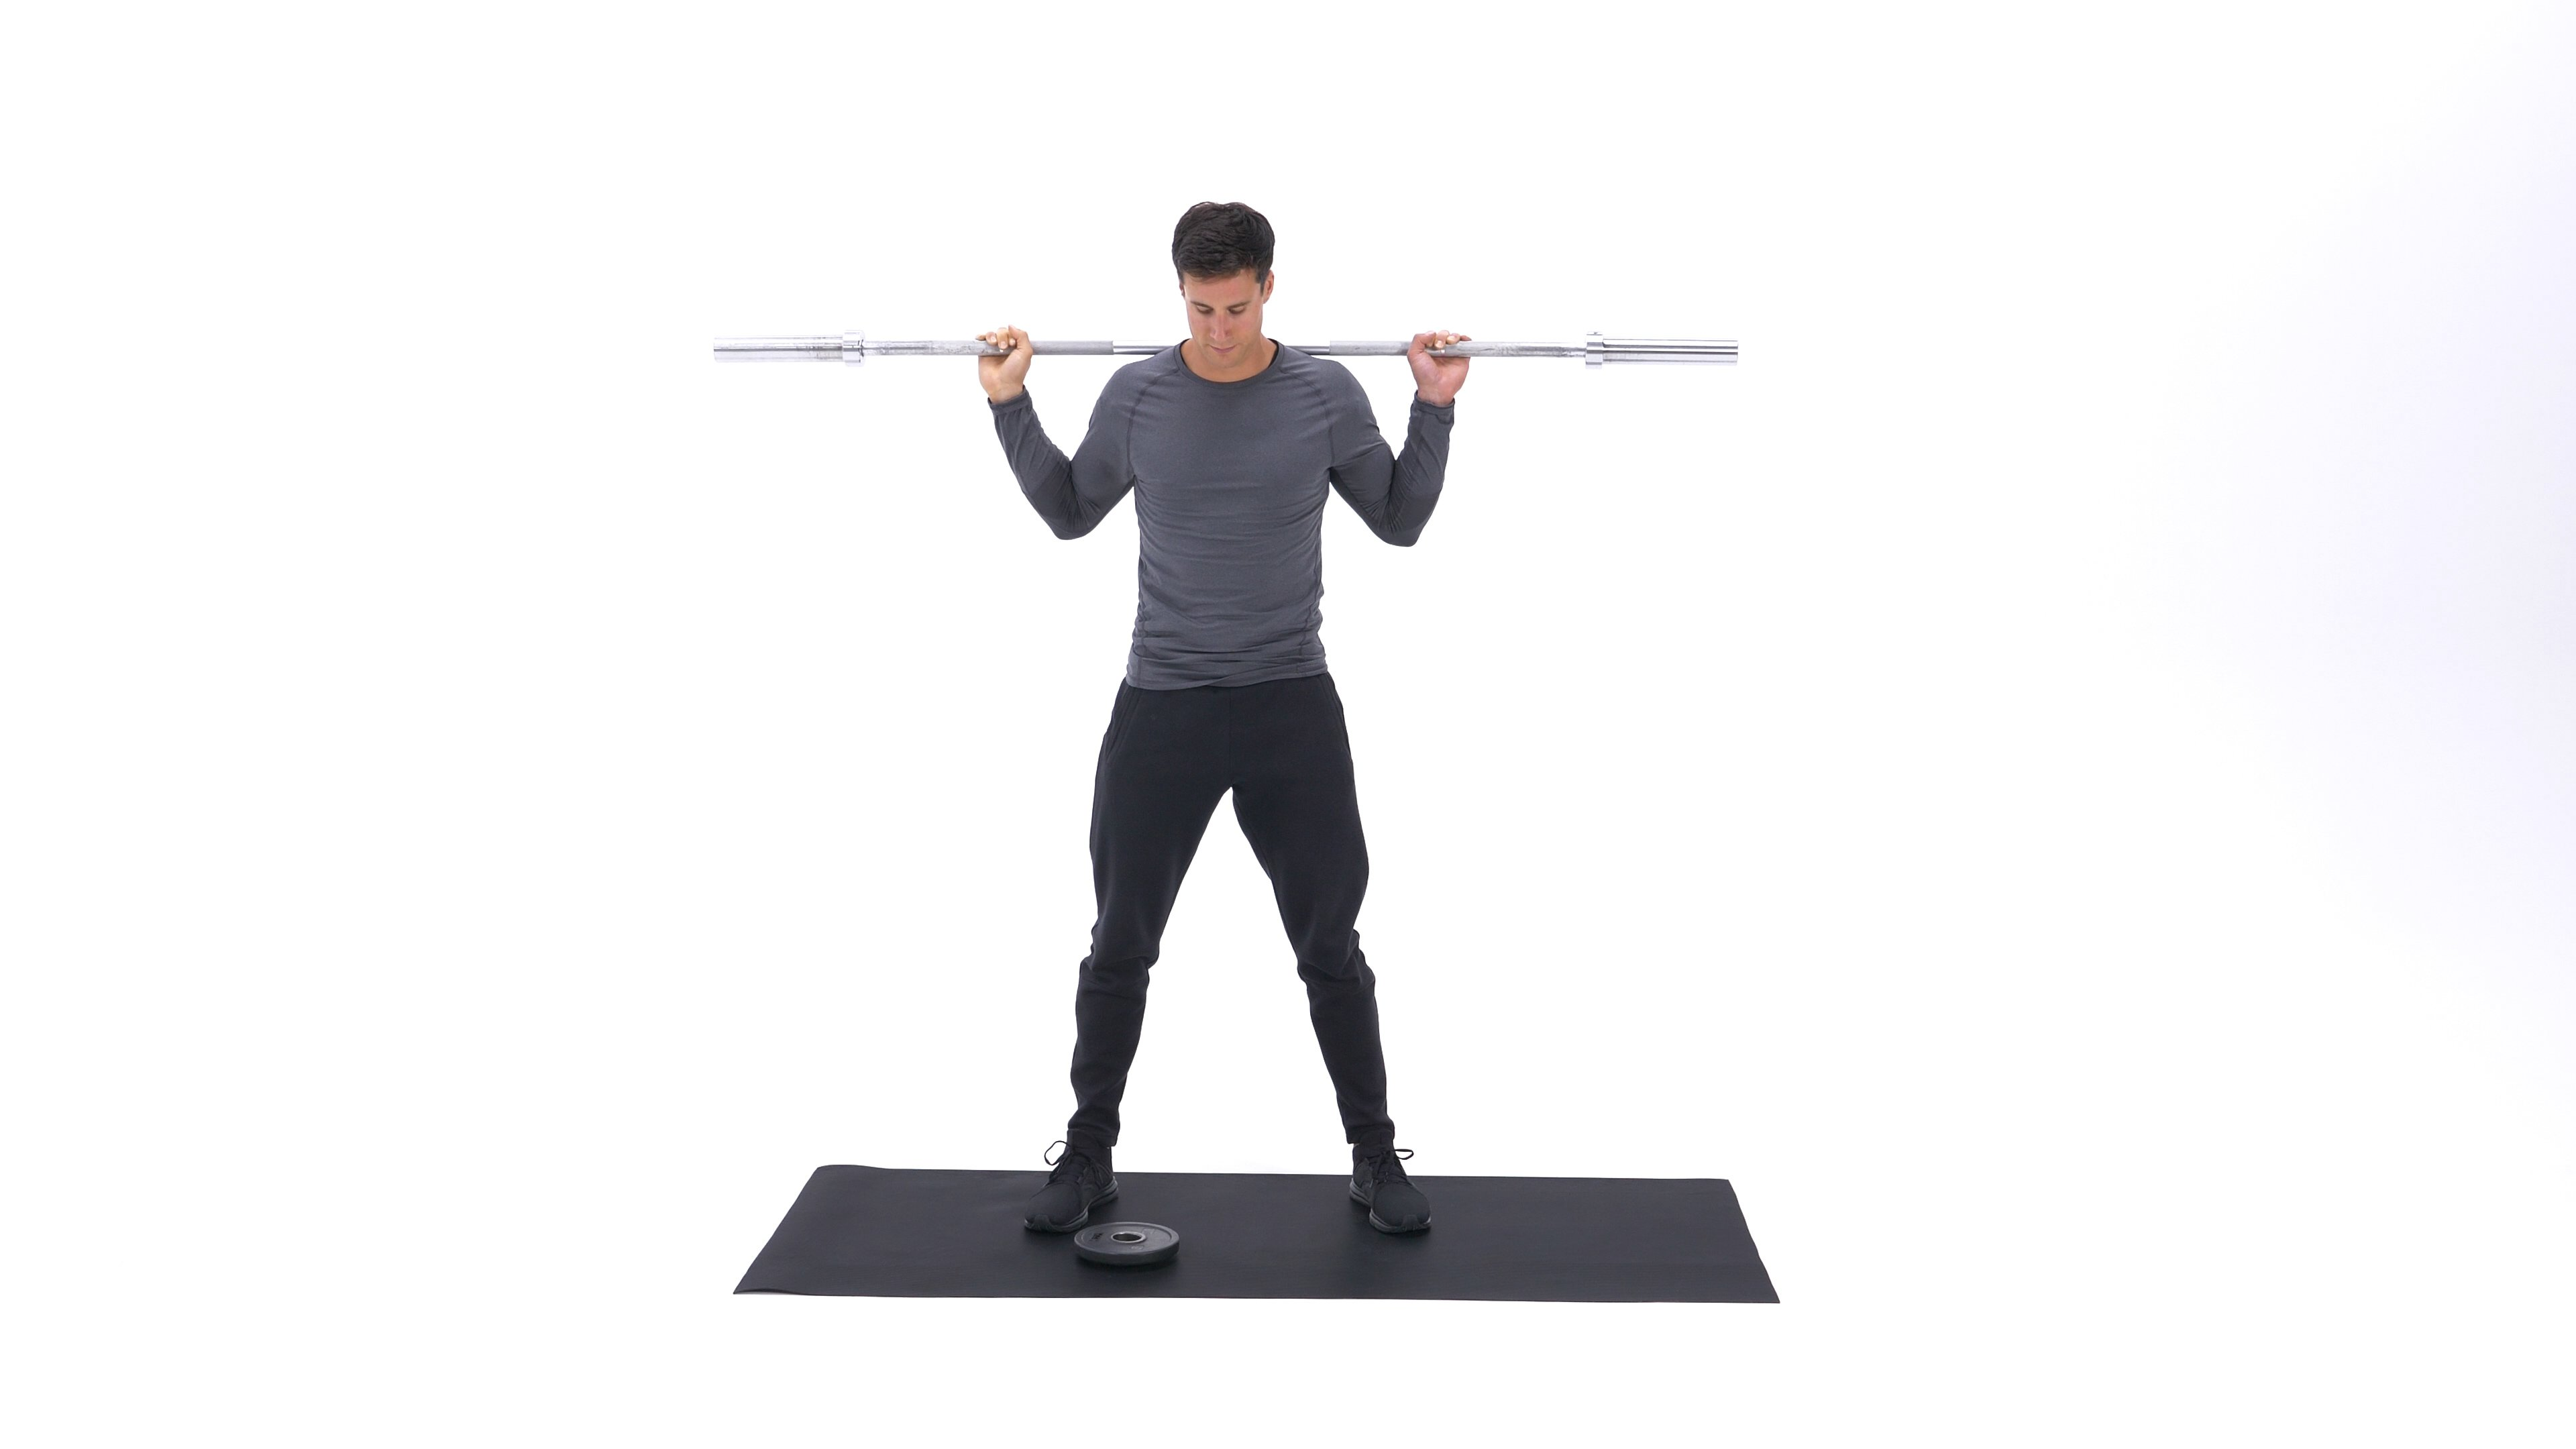 Barbell squat with plate slide image